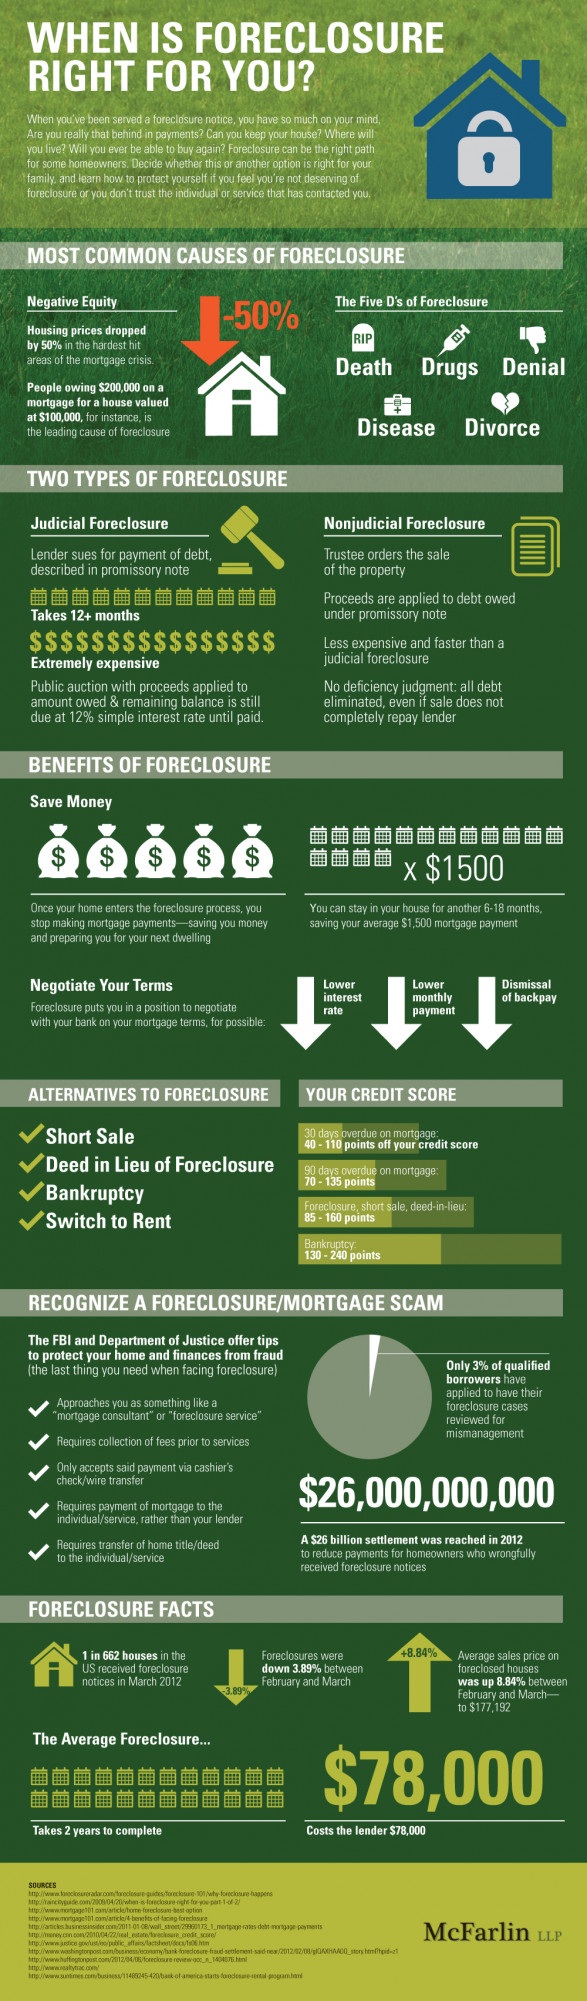 When Is Foreclosure Right For You?